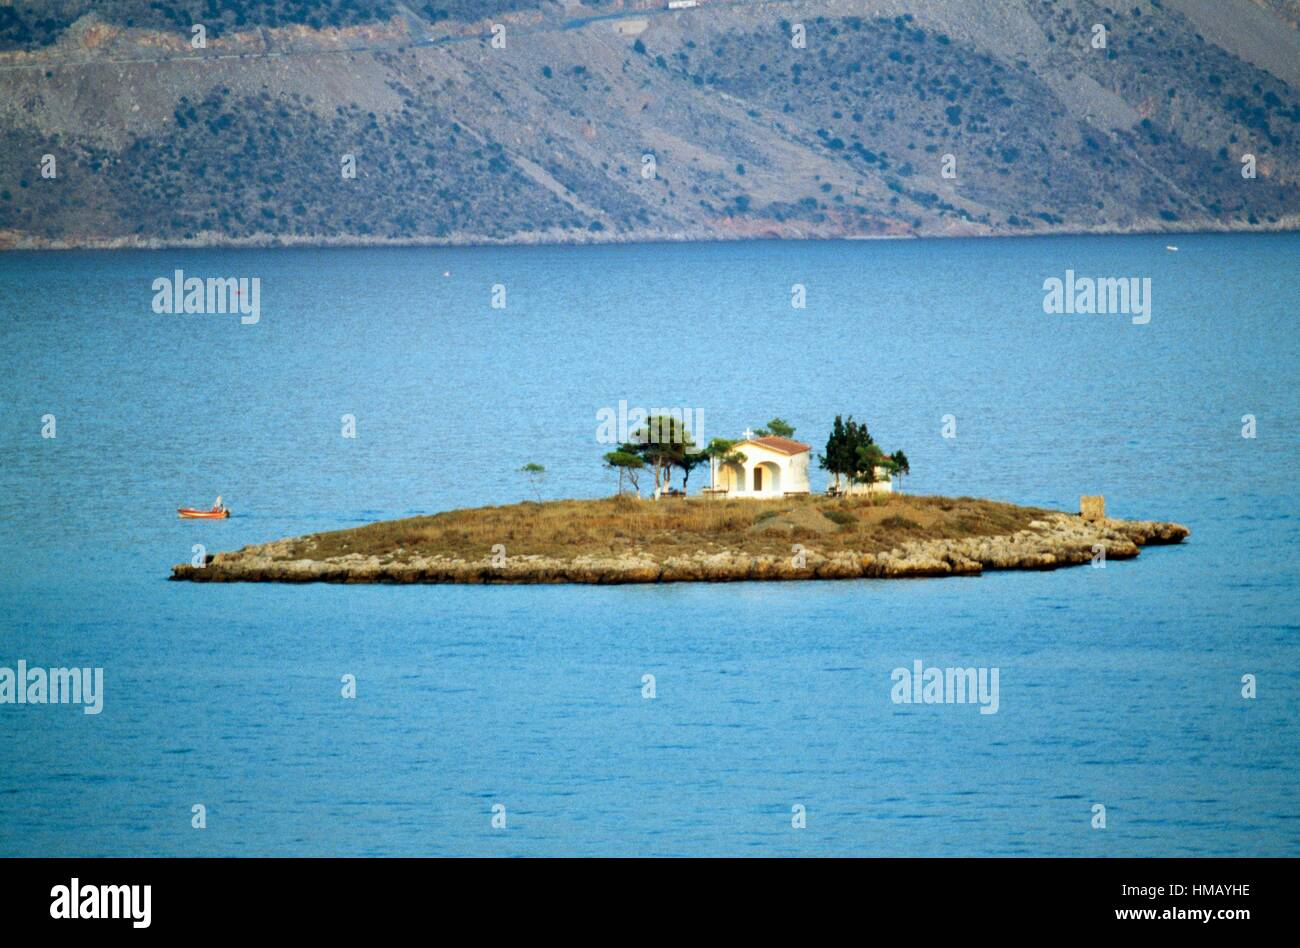 The church of Agios Konstantinos on the island of the same name in the Gulf of Itea, Greece. - Stock Image